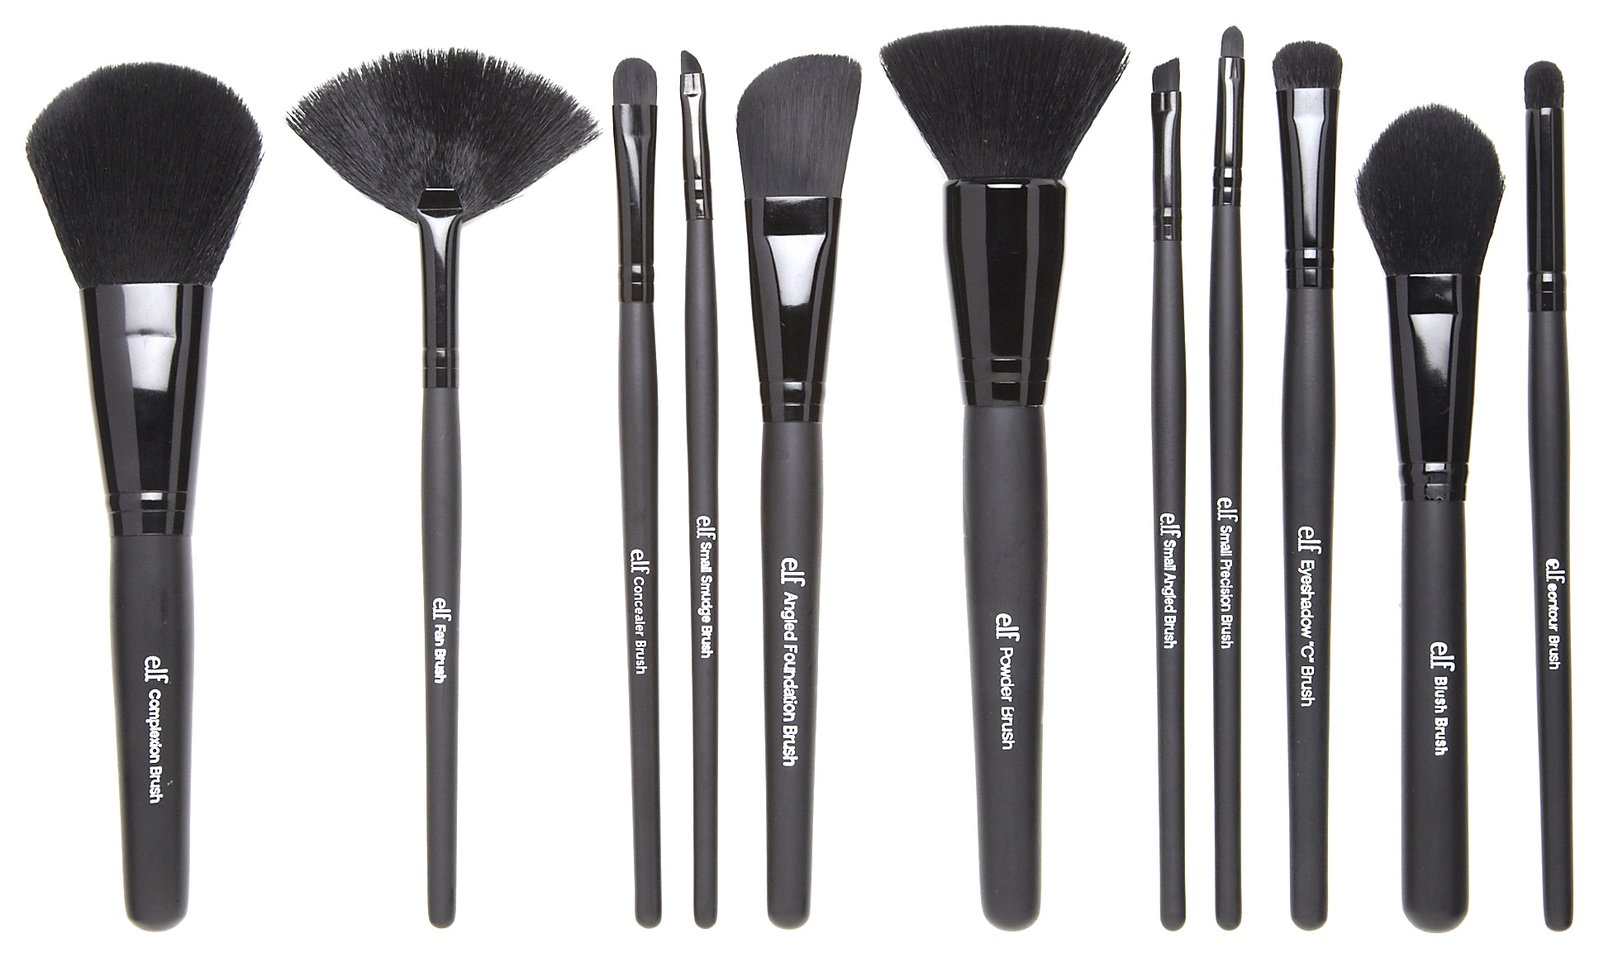 Branded Elf Makeup Brushes